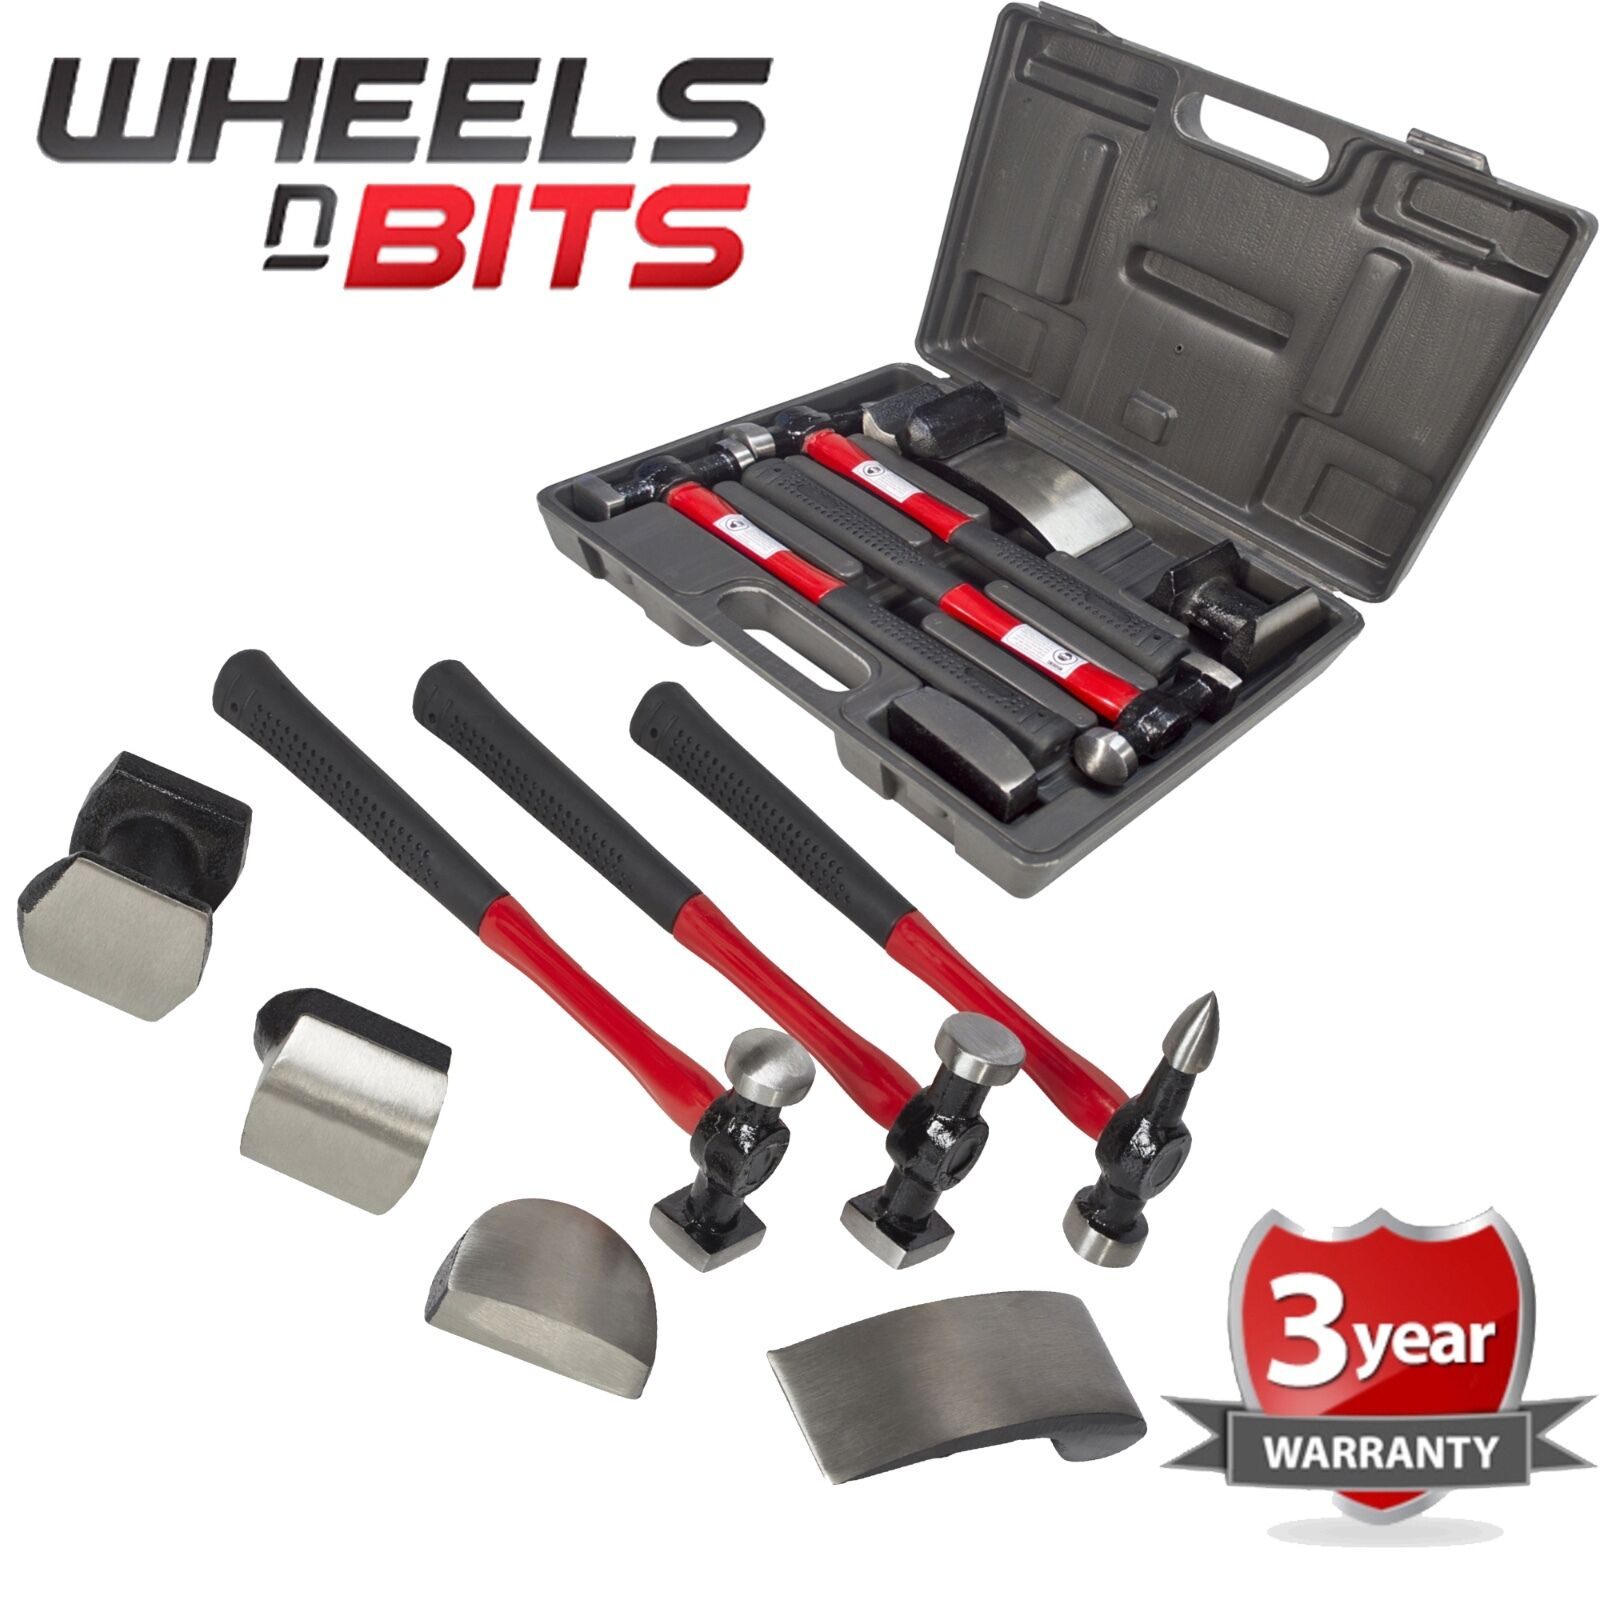 PRO 7PC CAR AUTO BODY PANEL REPAIR TOOL KIT WITH FIBRE BODY BEATING HAMMERS